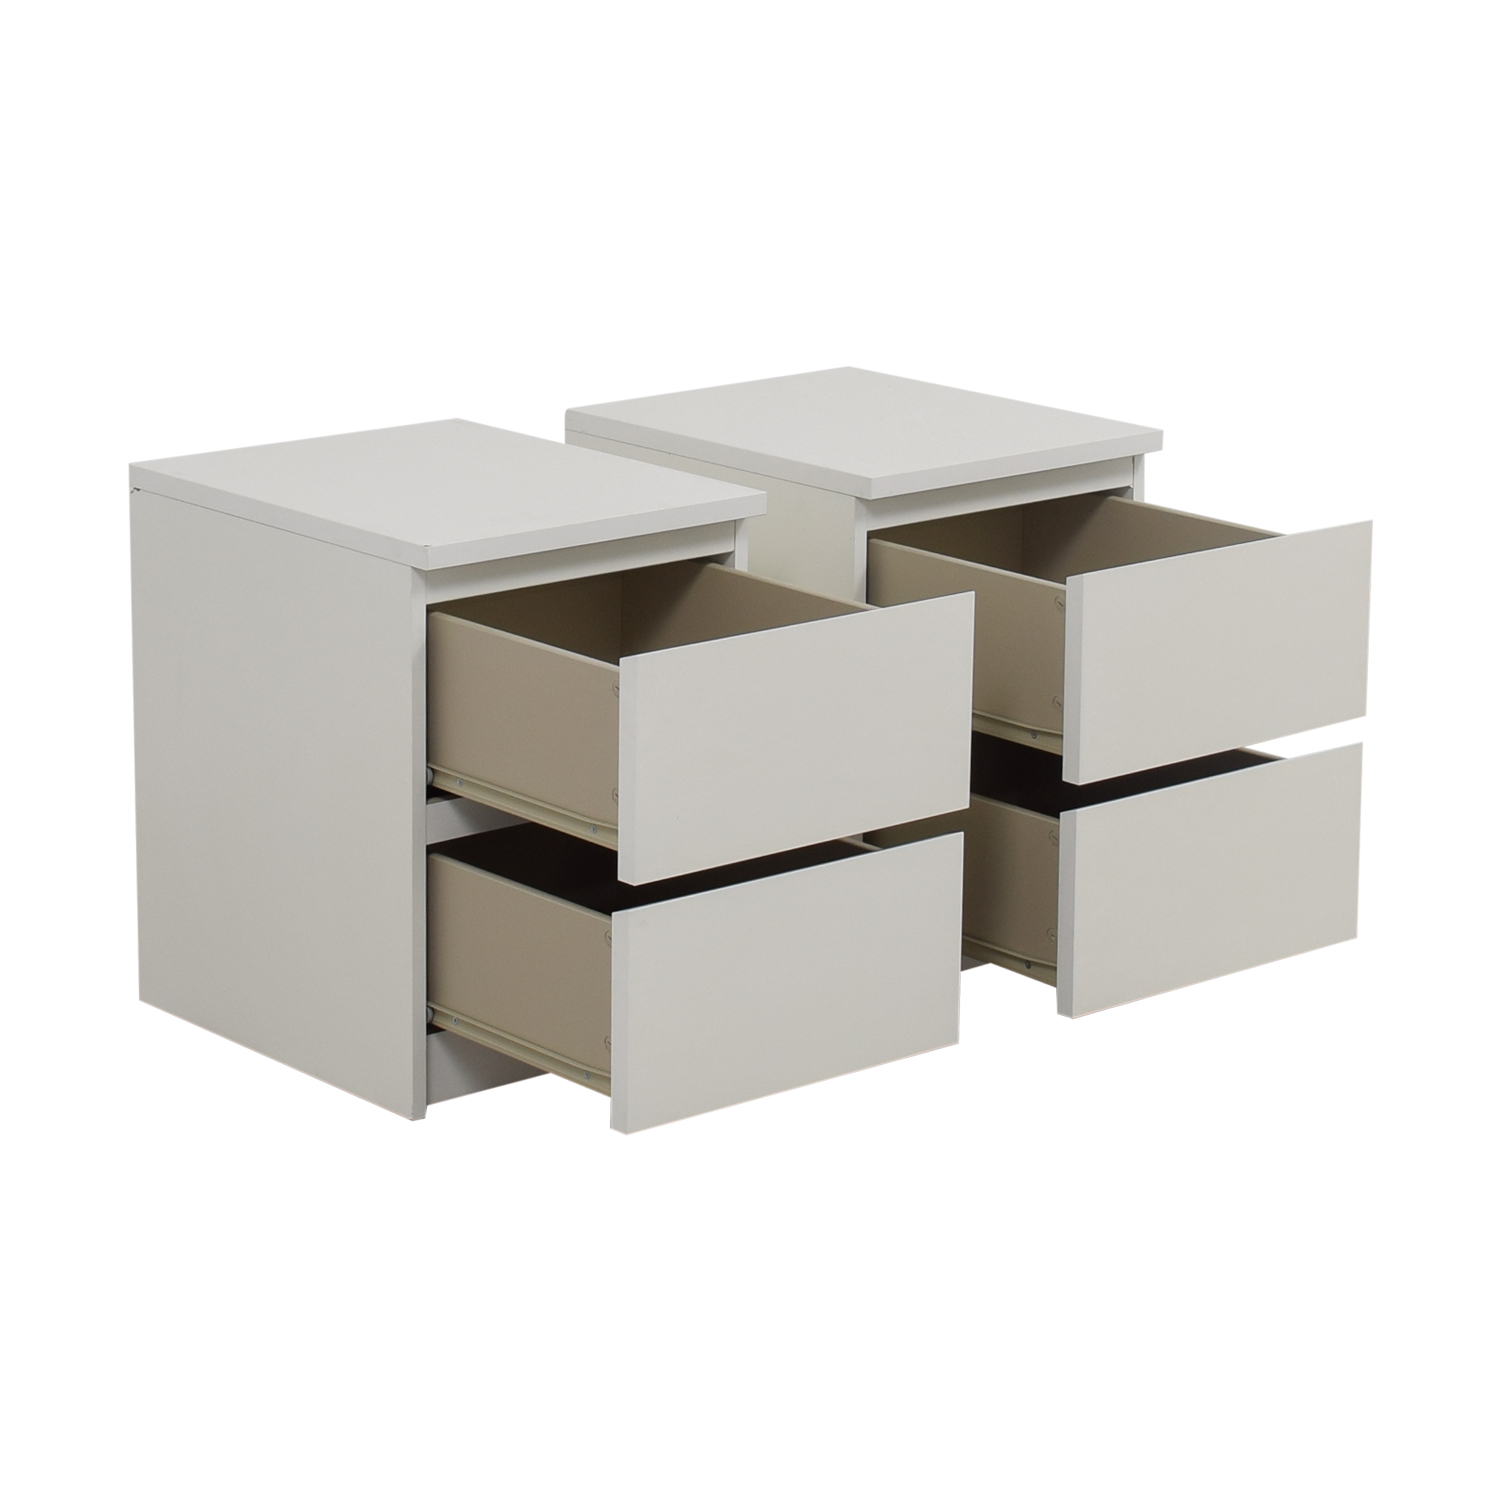 IKEA IKEA Malm Two-Drawer White End Tables / Tables